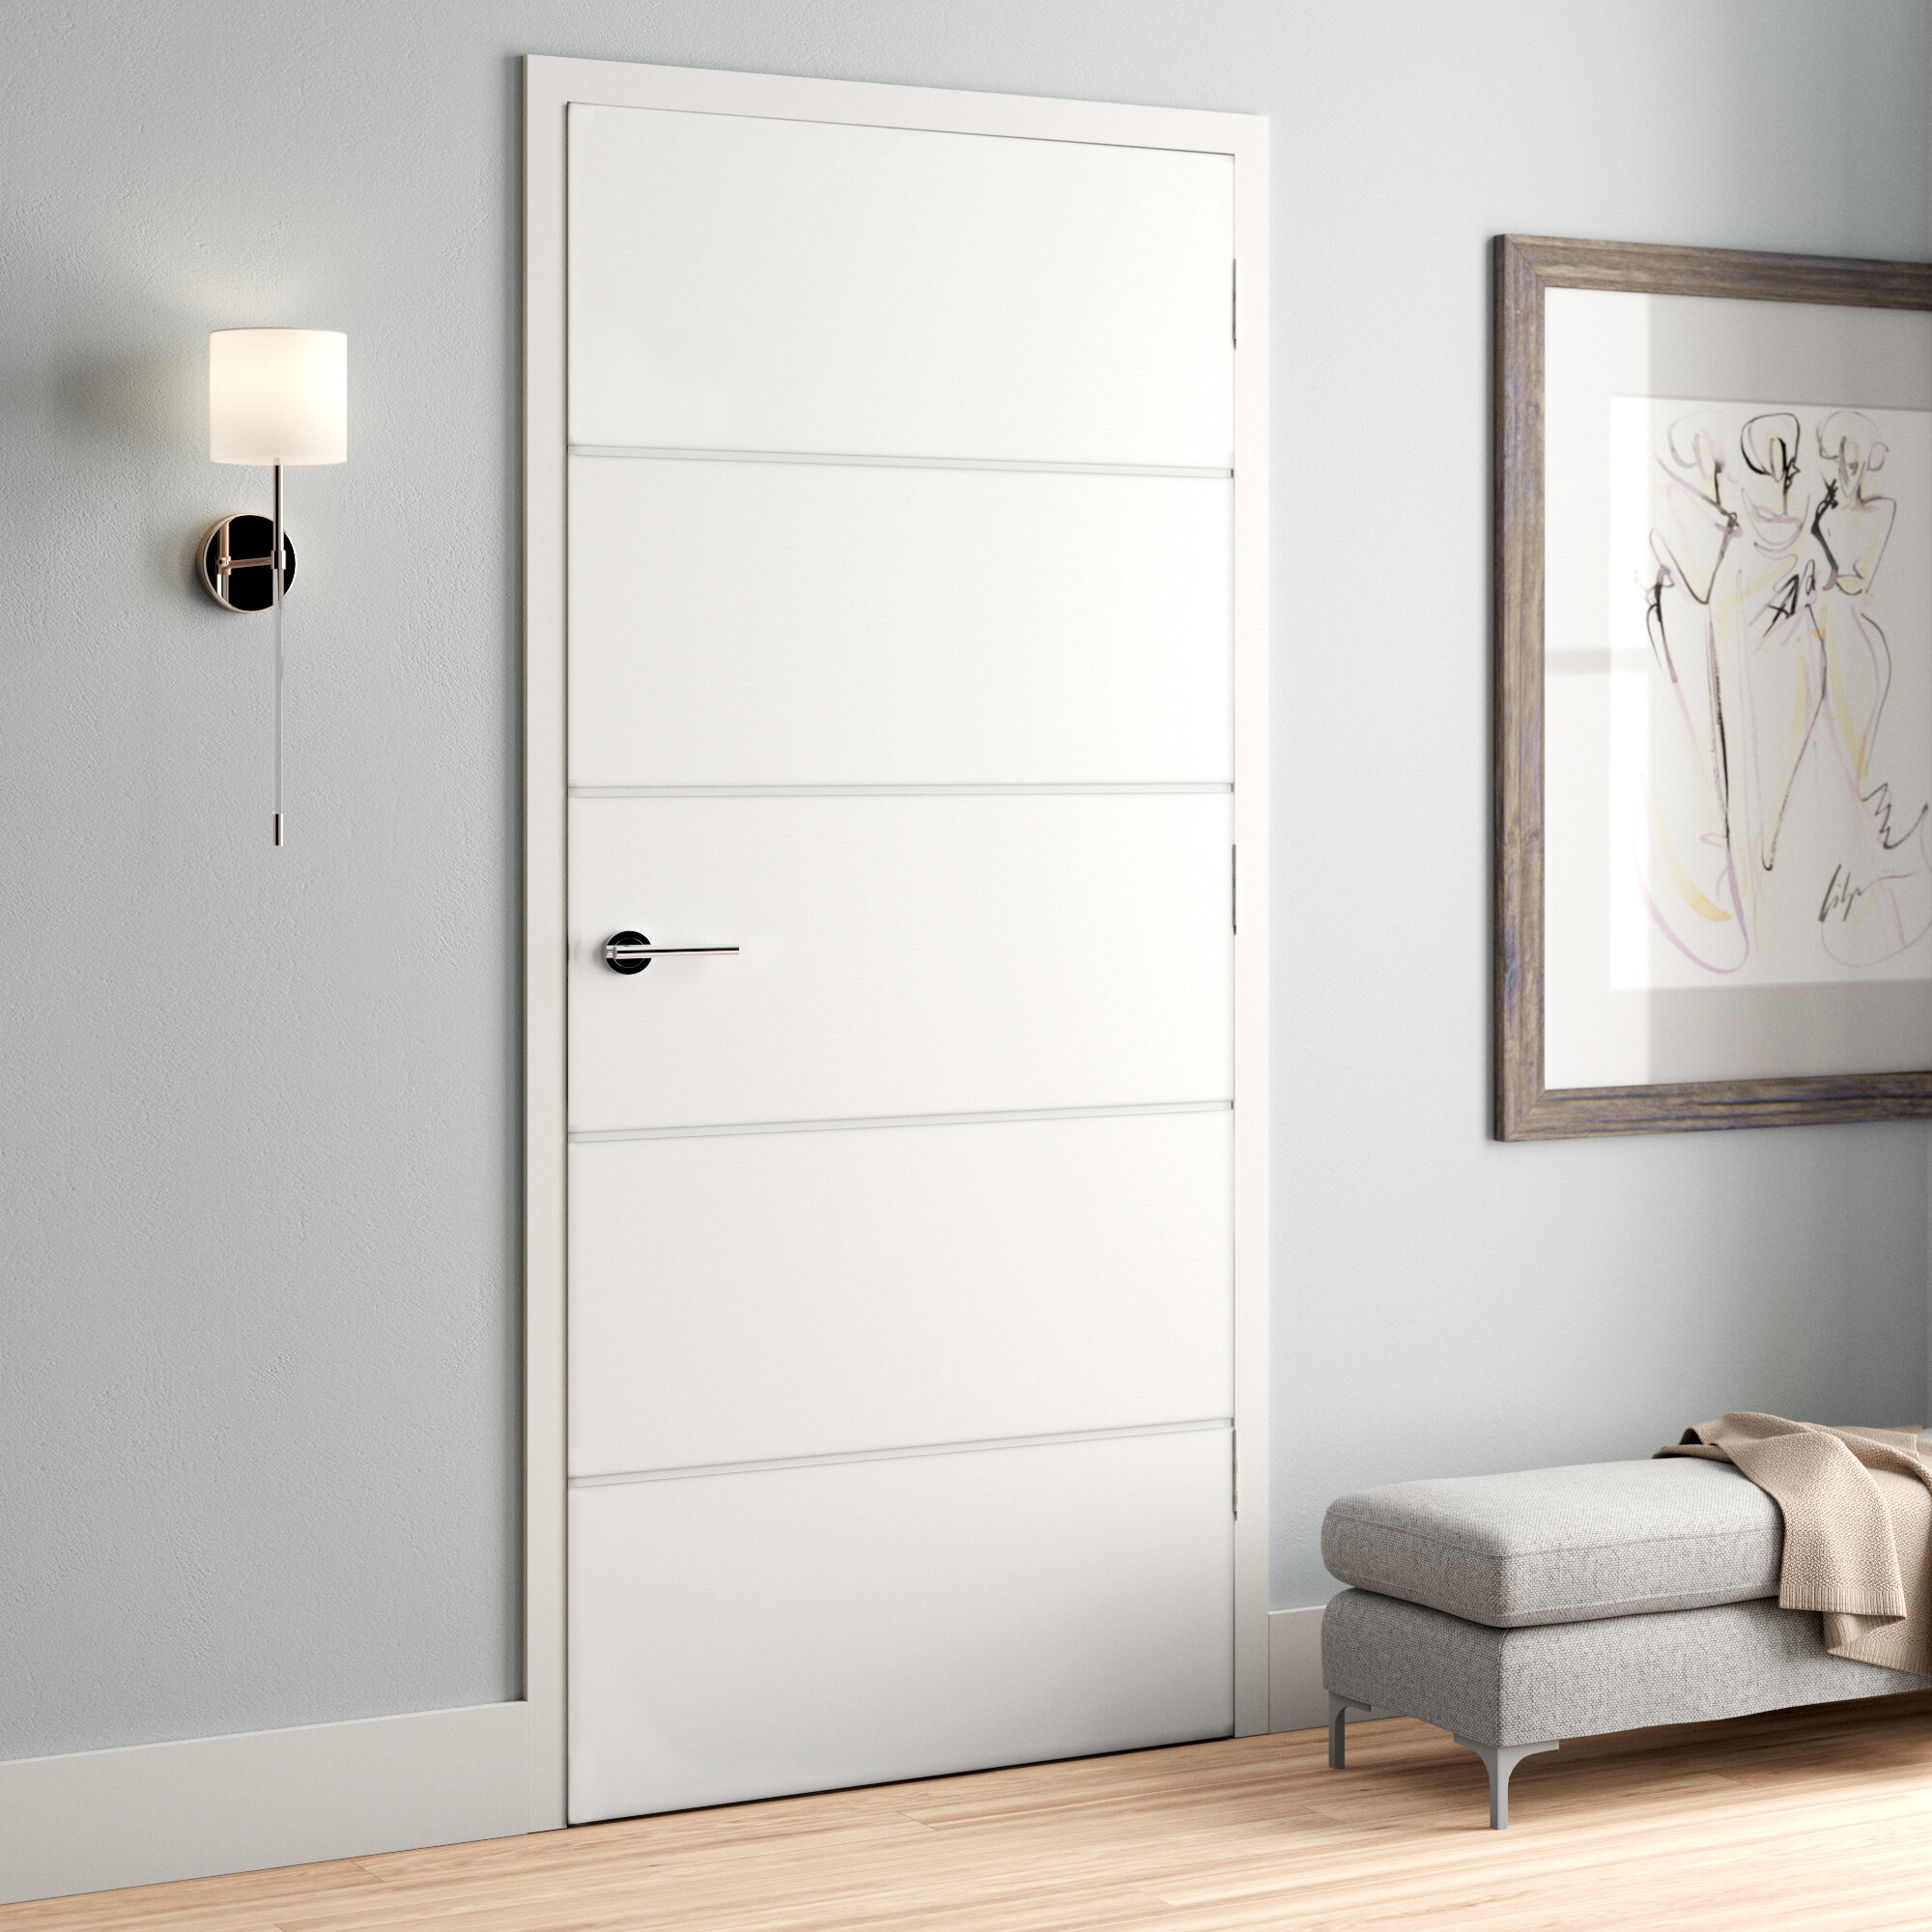 Interior Doors Toronto Door Manufacturer